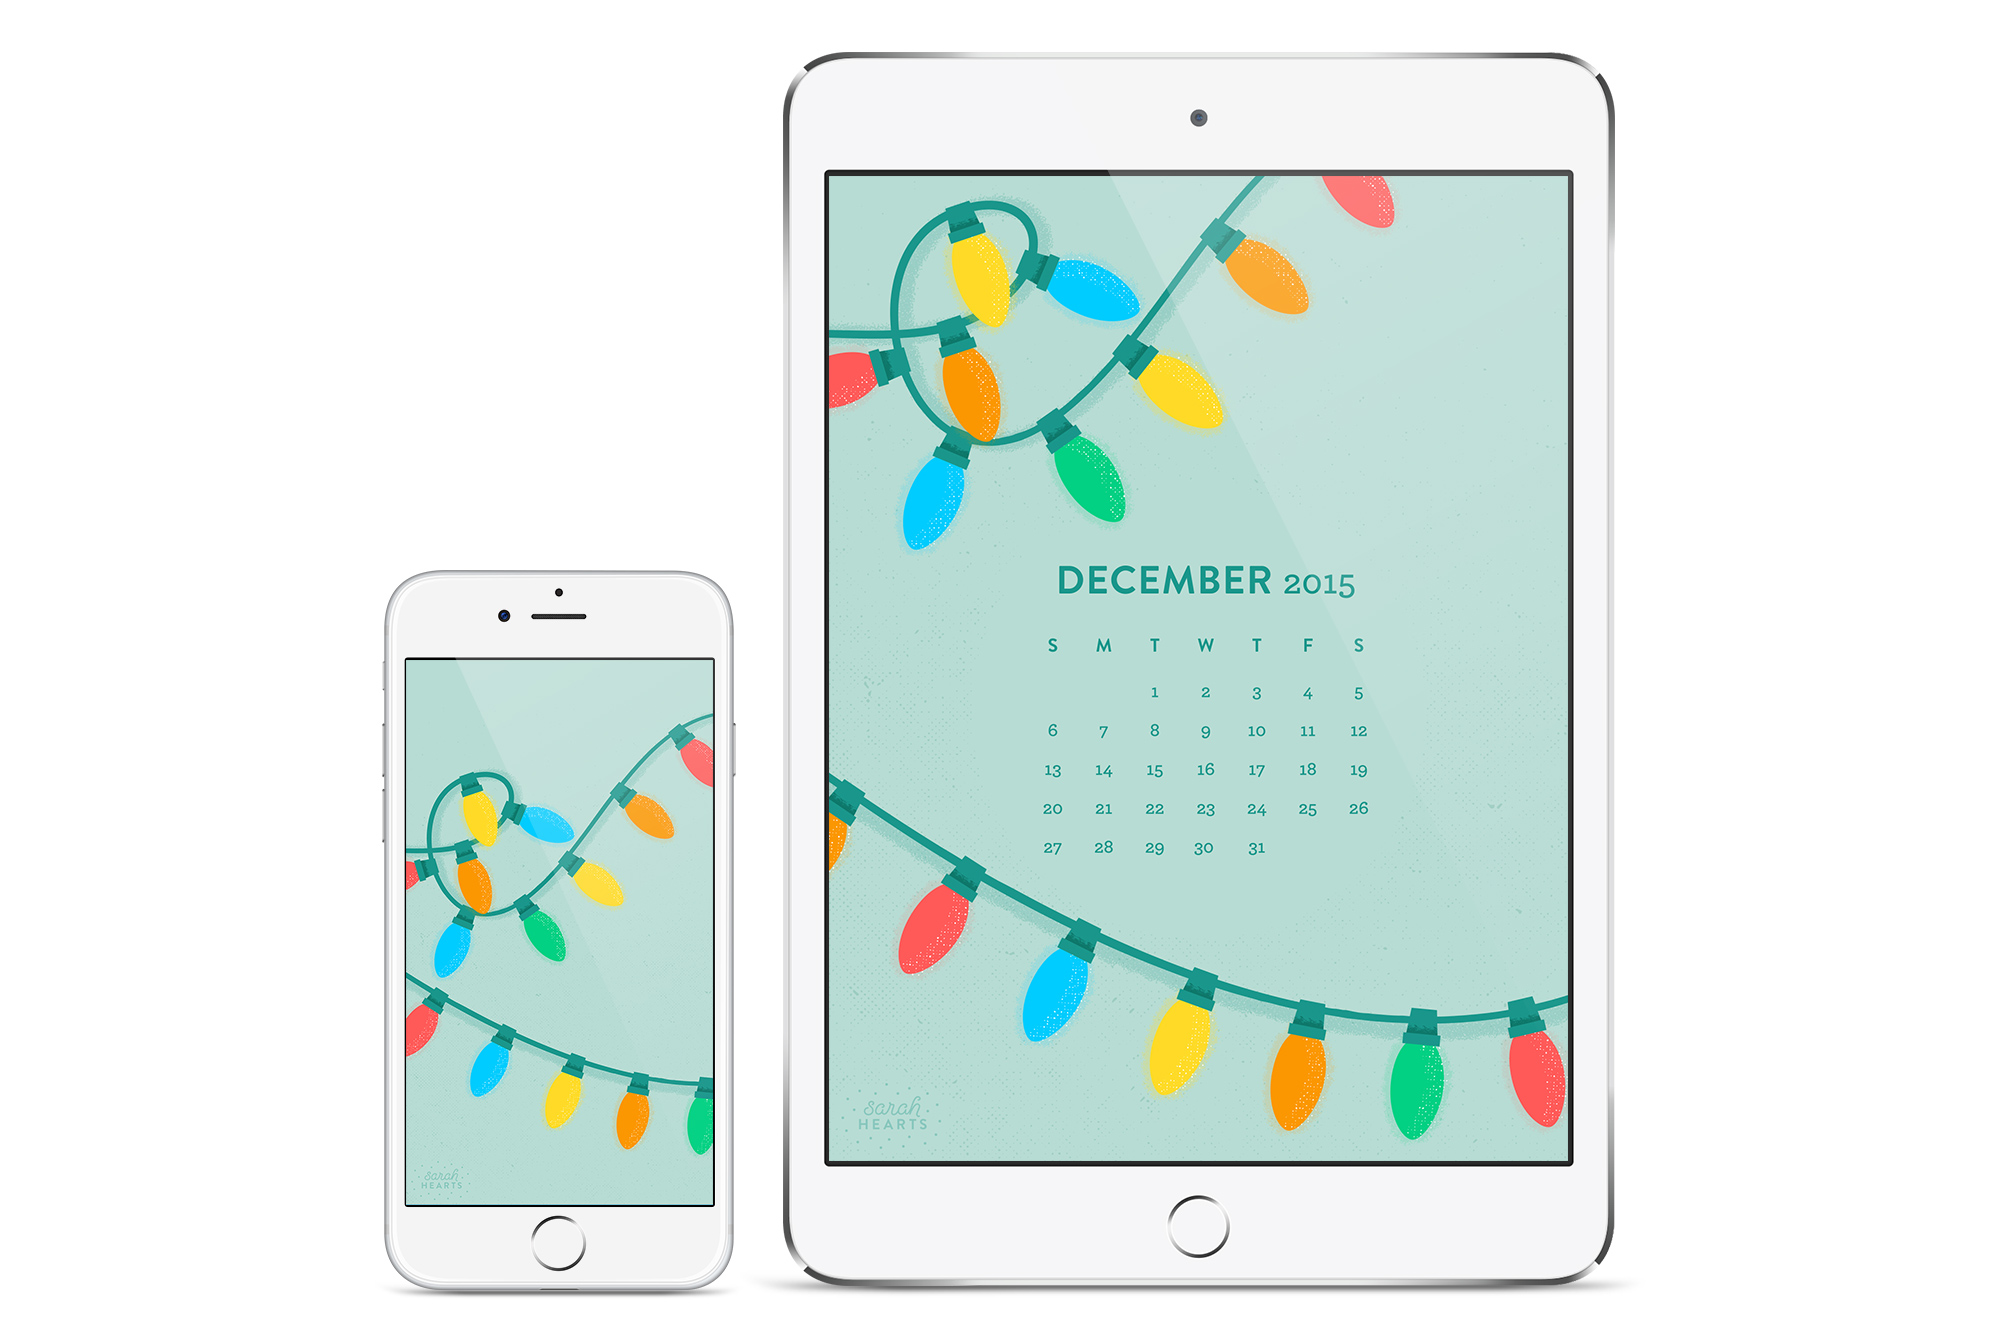 Take the holidays wherever you go with this free festive phone and tablet wallpaper!